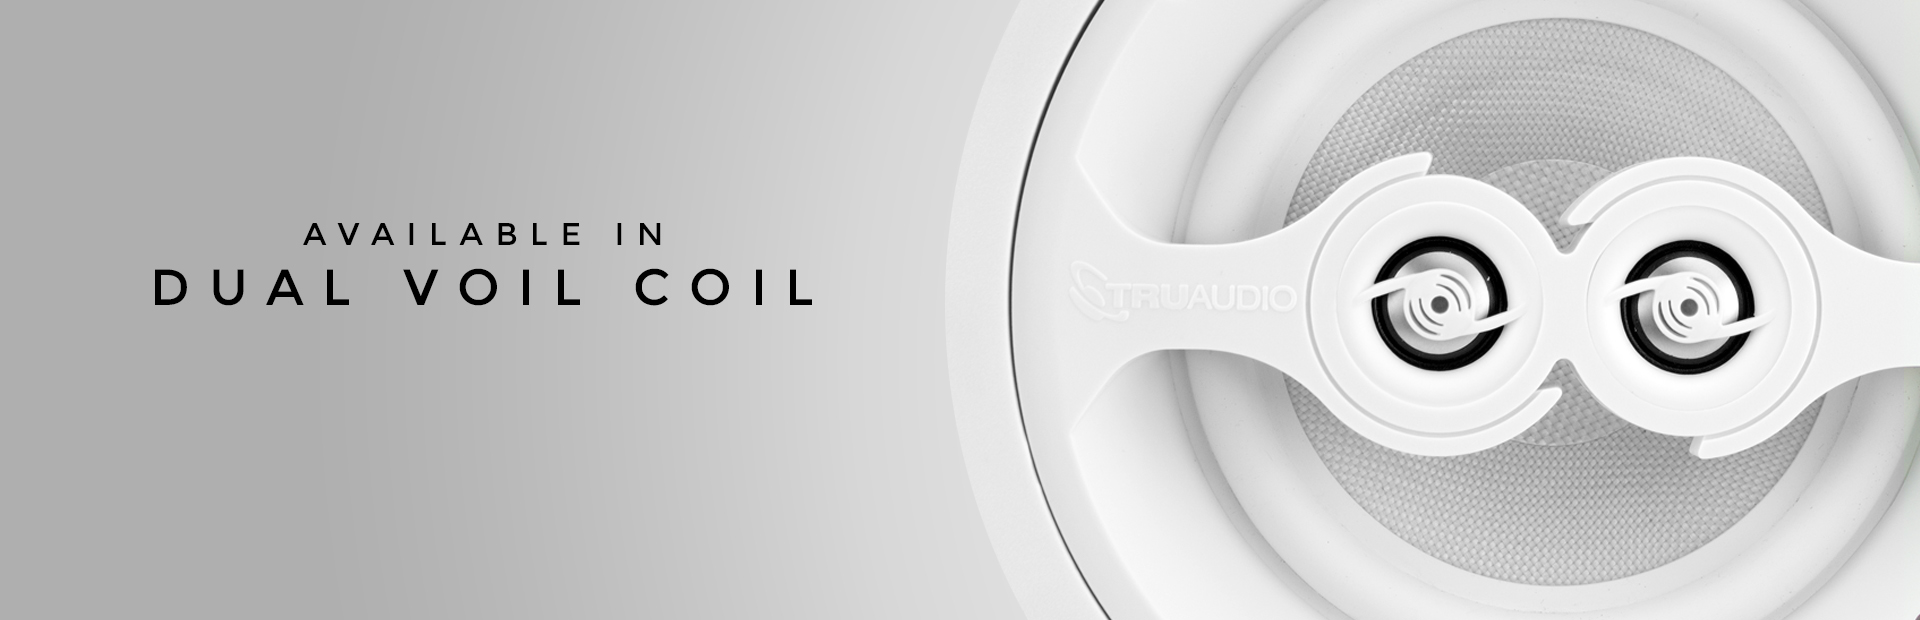 Dual Voice Coil options